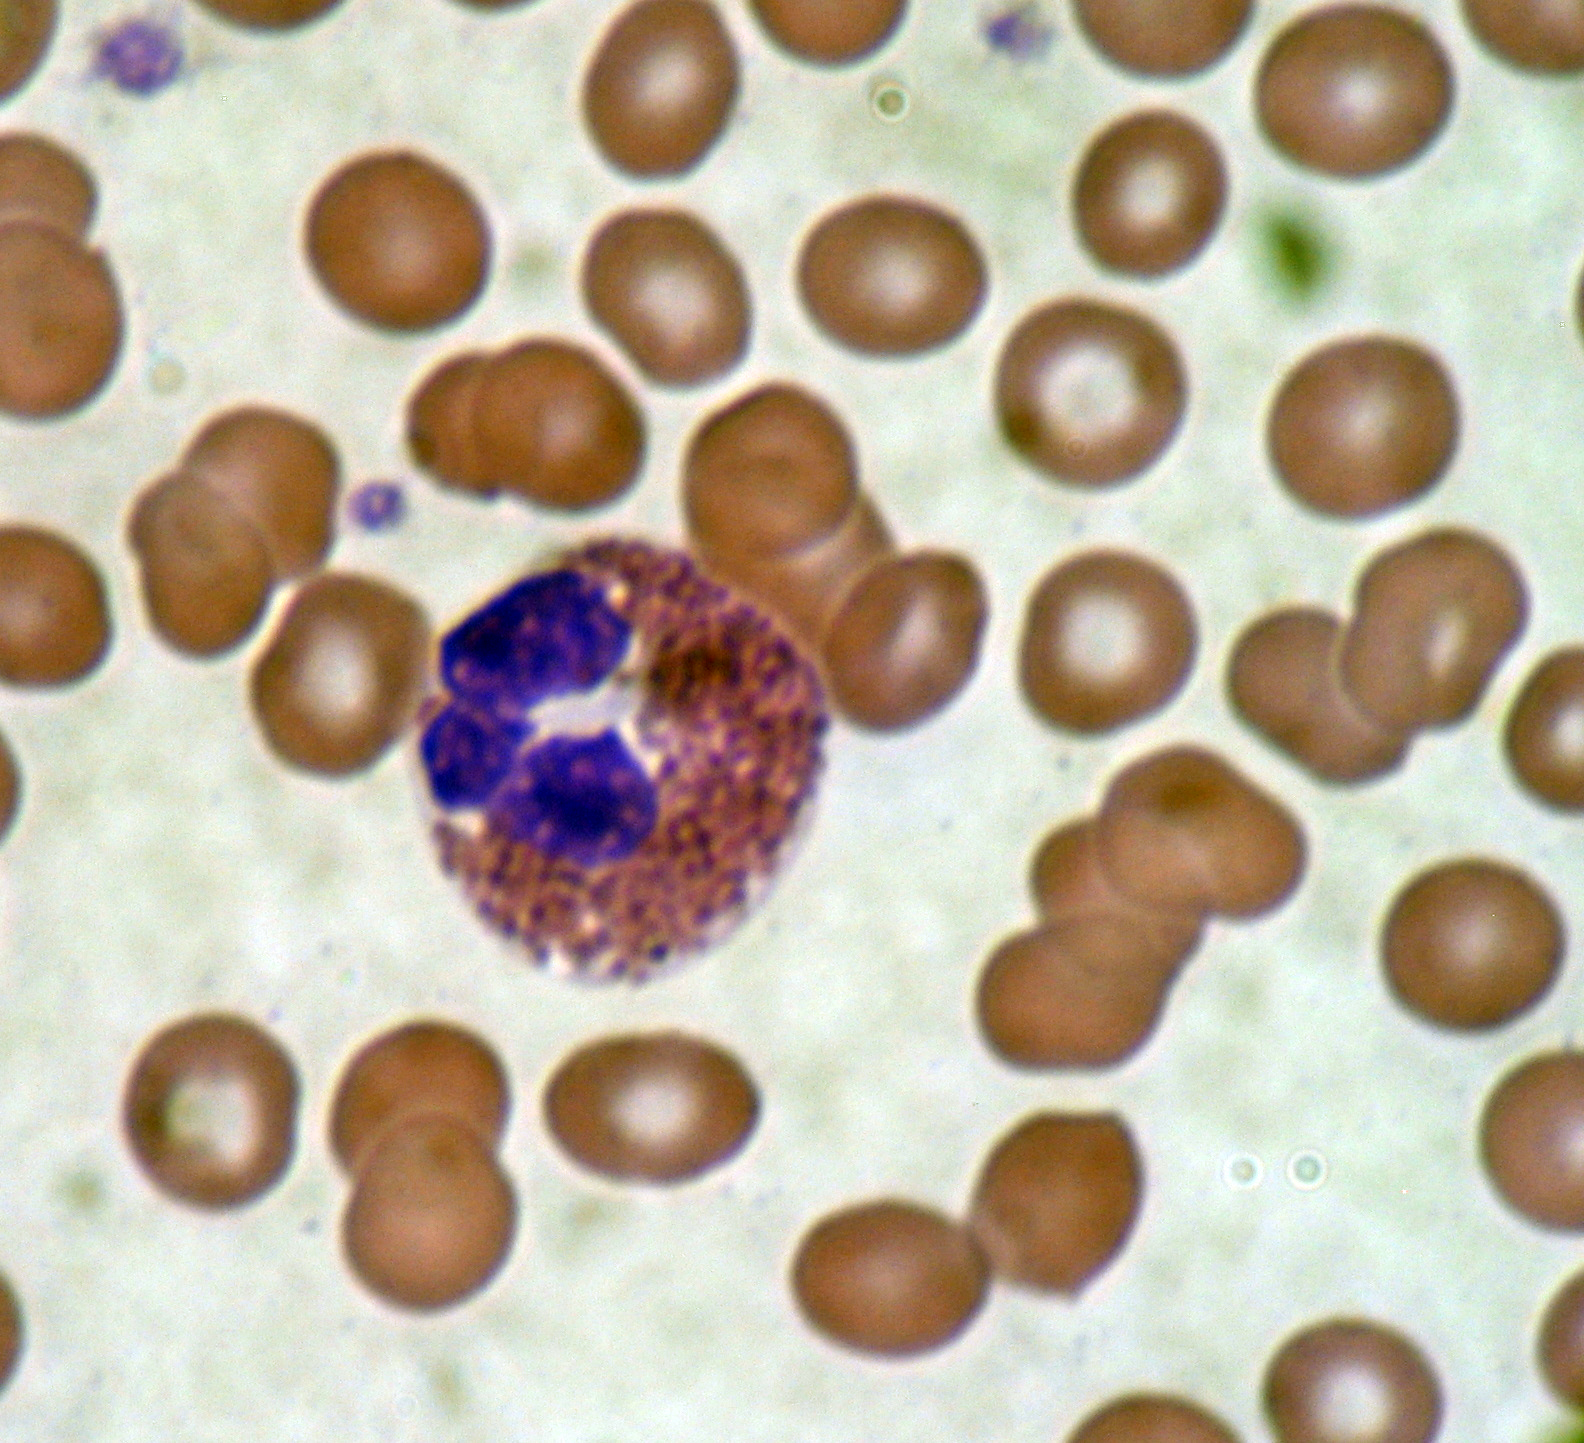 Red Blood Cell Eosinophil Microscope Slide